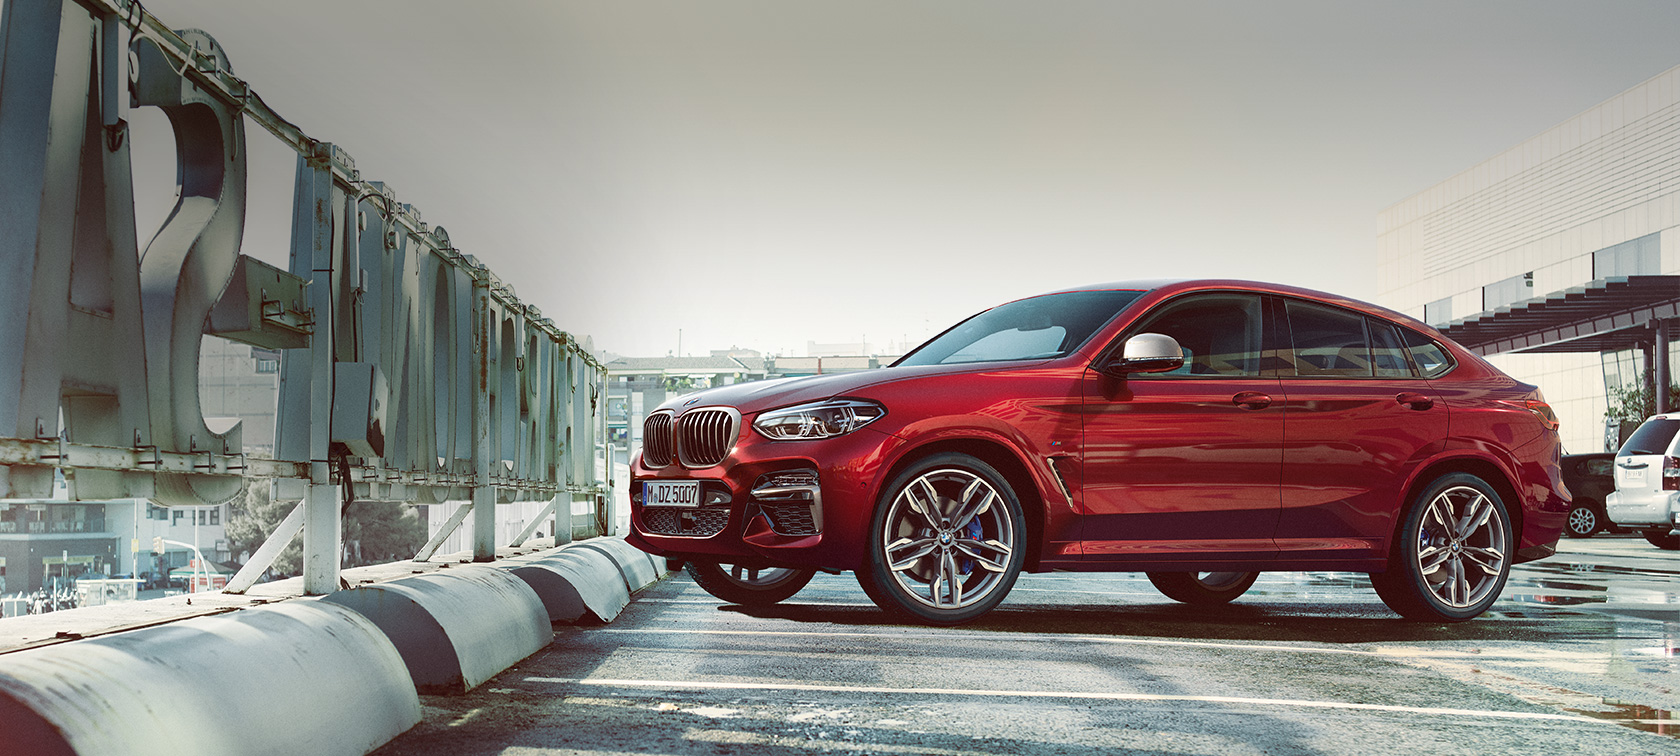 BMW X4 M40i G02 2018 Flamenco Red brilliant effect side view parking on parking deck